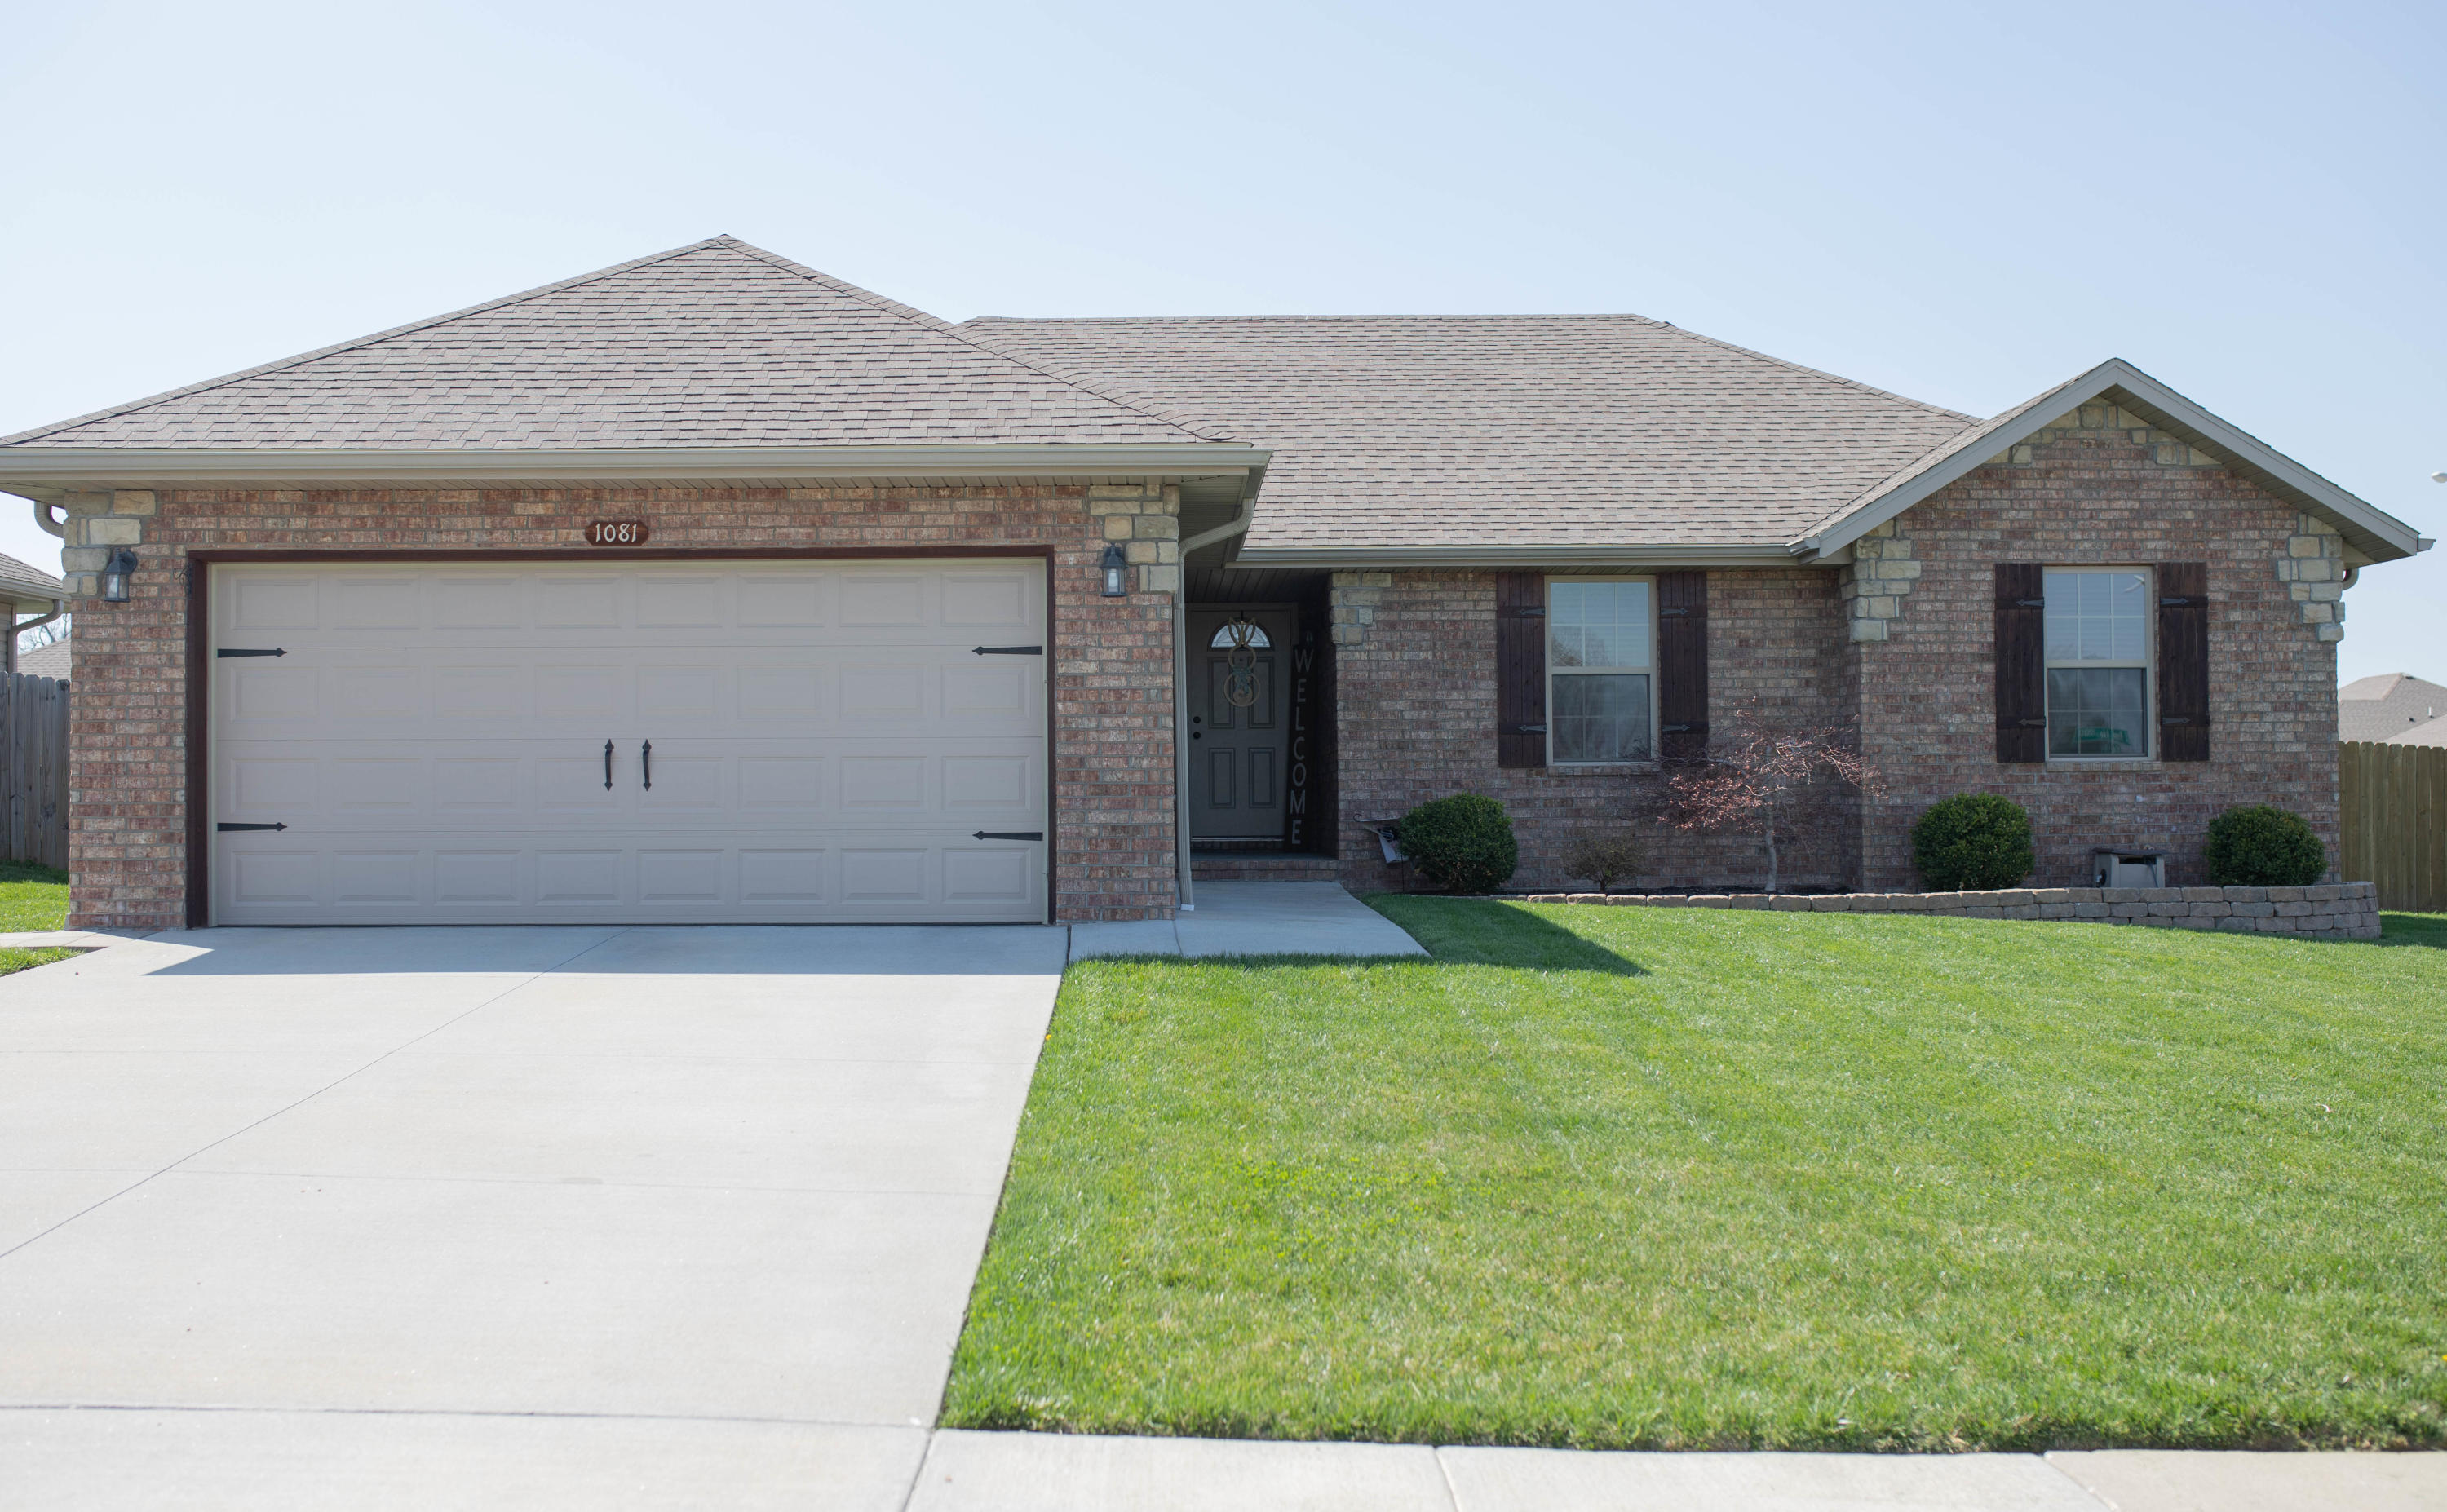 1081 South Rome Avenue Republic, MO 65738